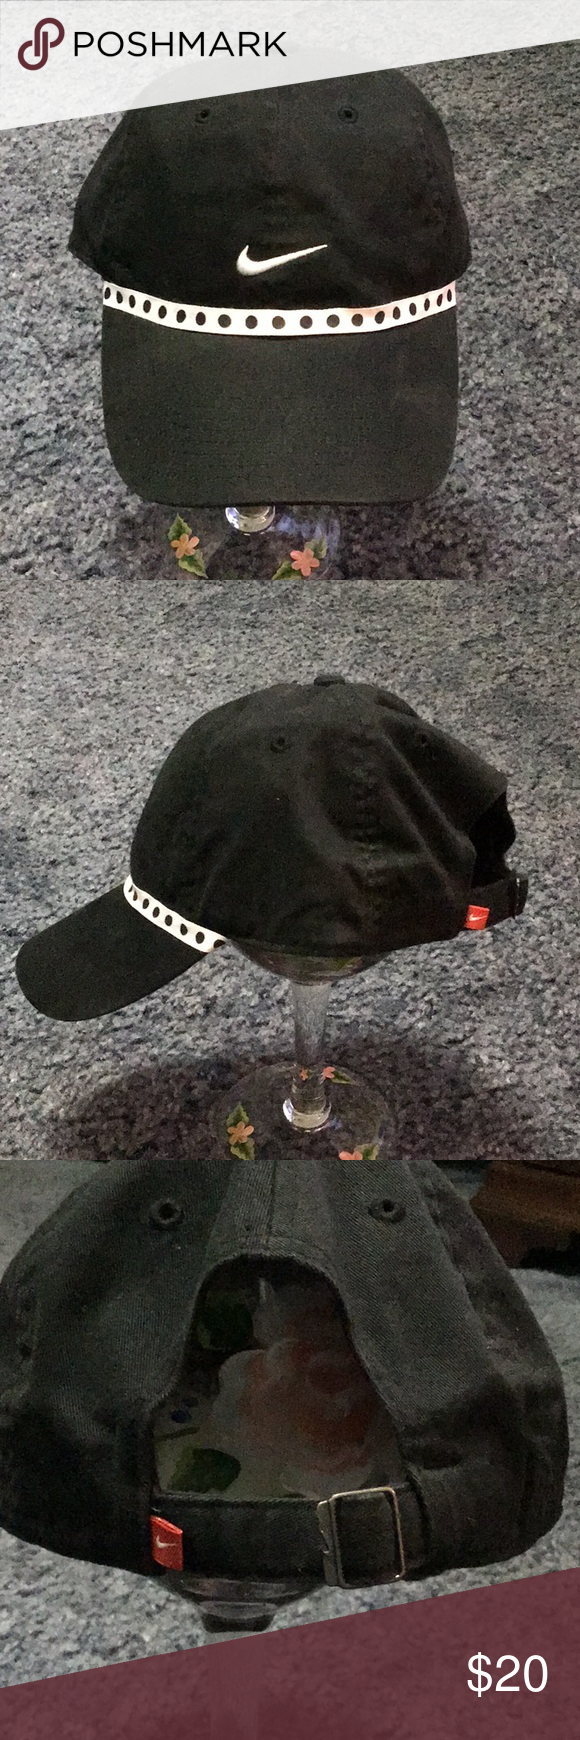 0090ac921bd4b Nike cap Super cute Fitted 🧢 😊 Nike fitted hat adjustable strap and buckle.  Black